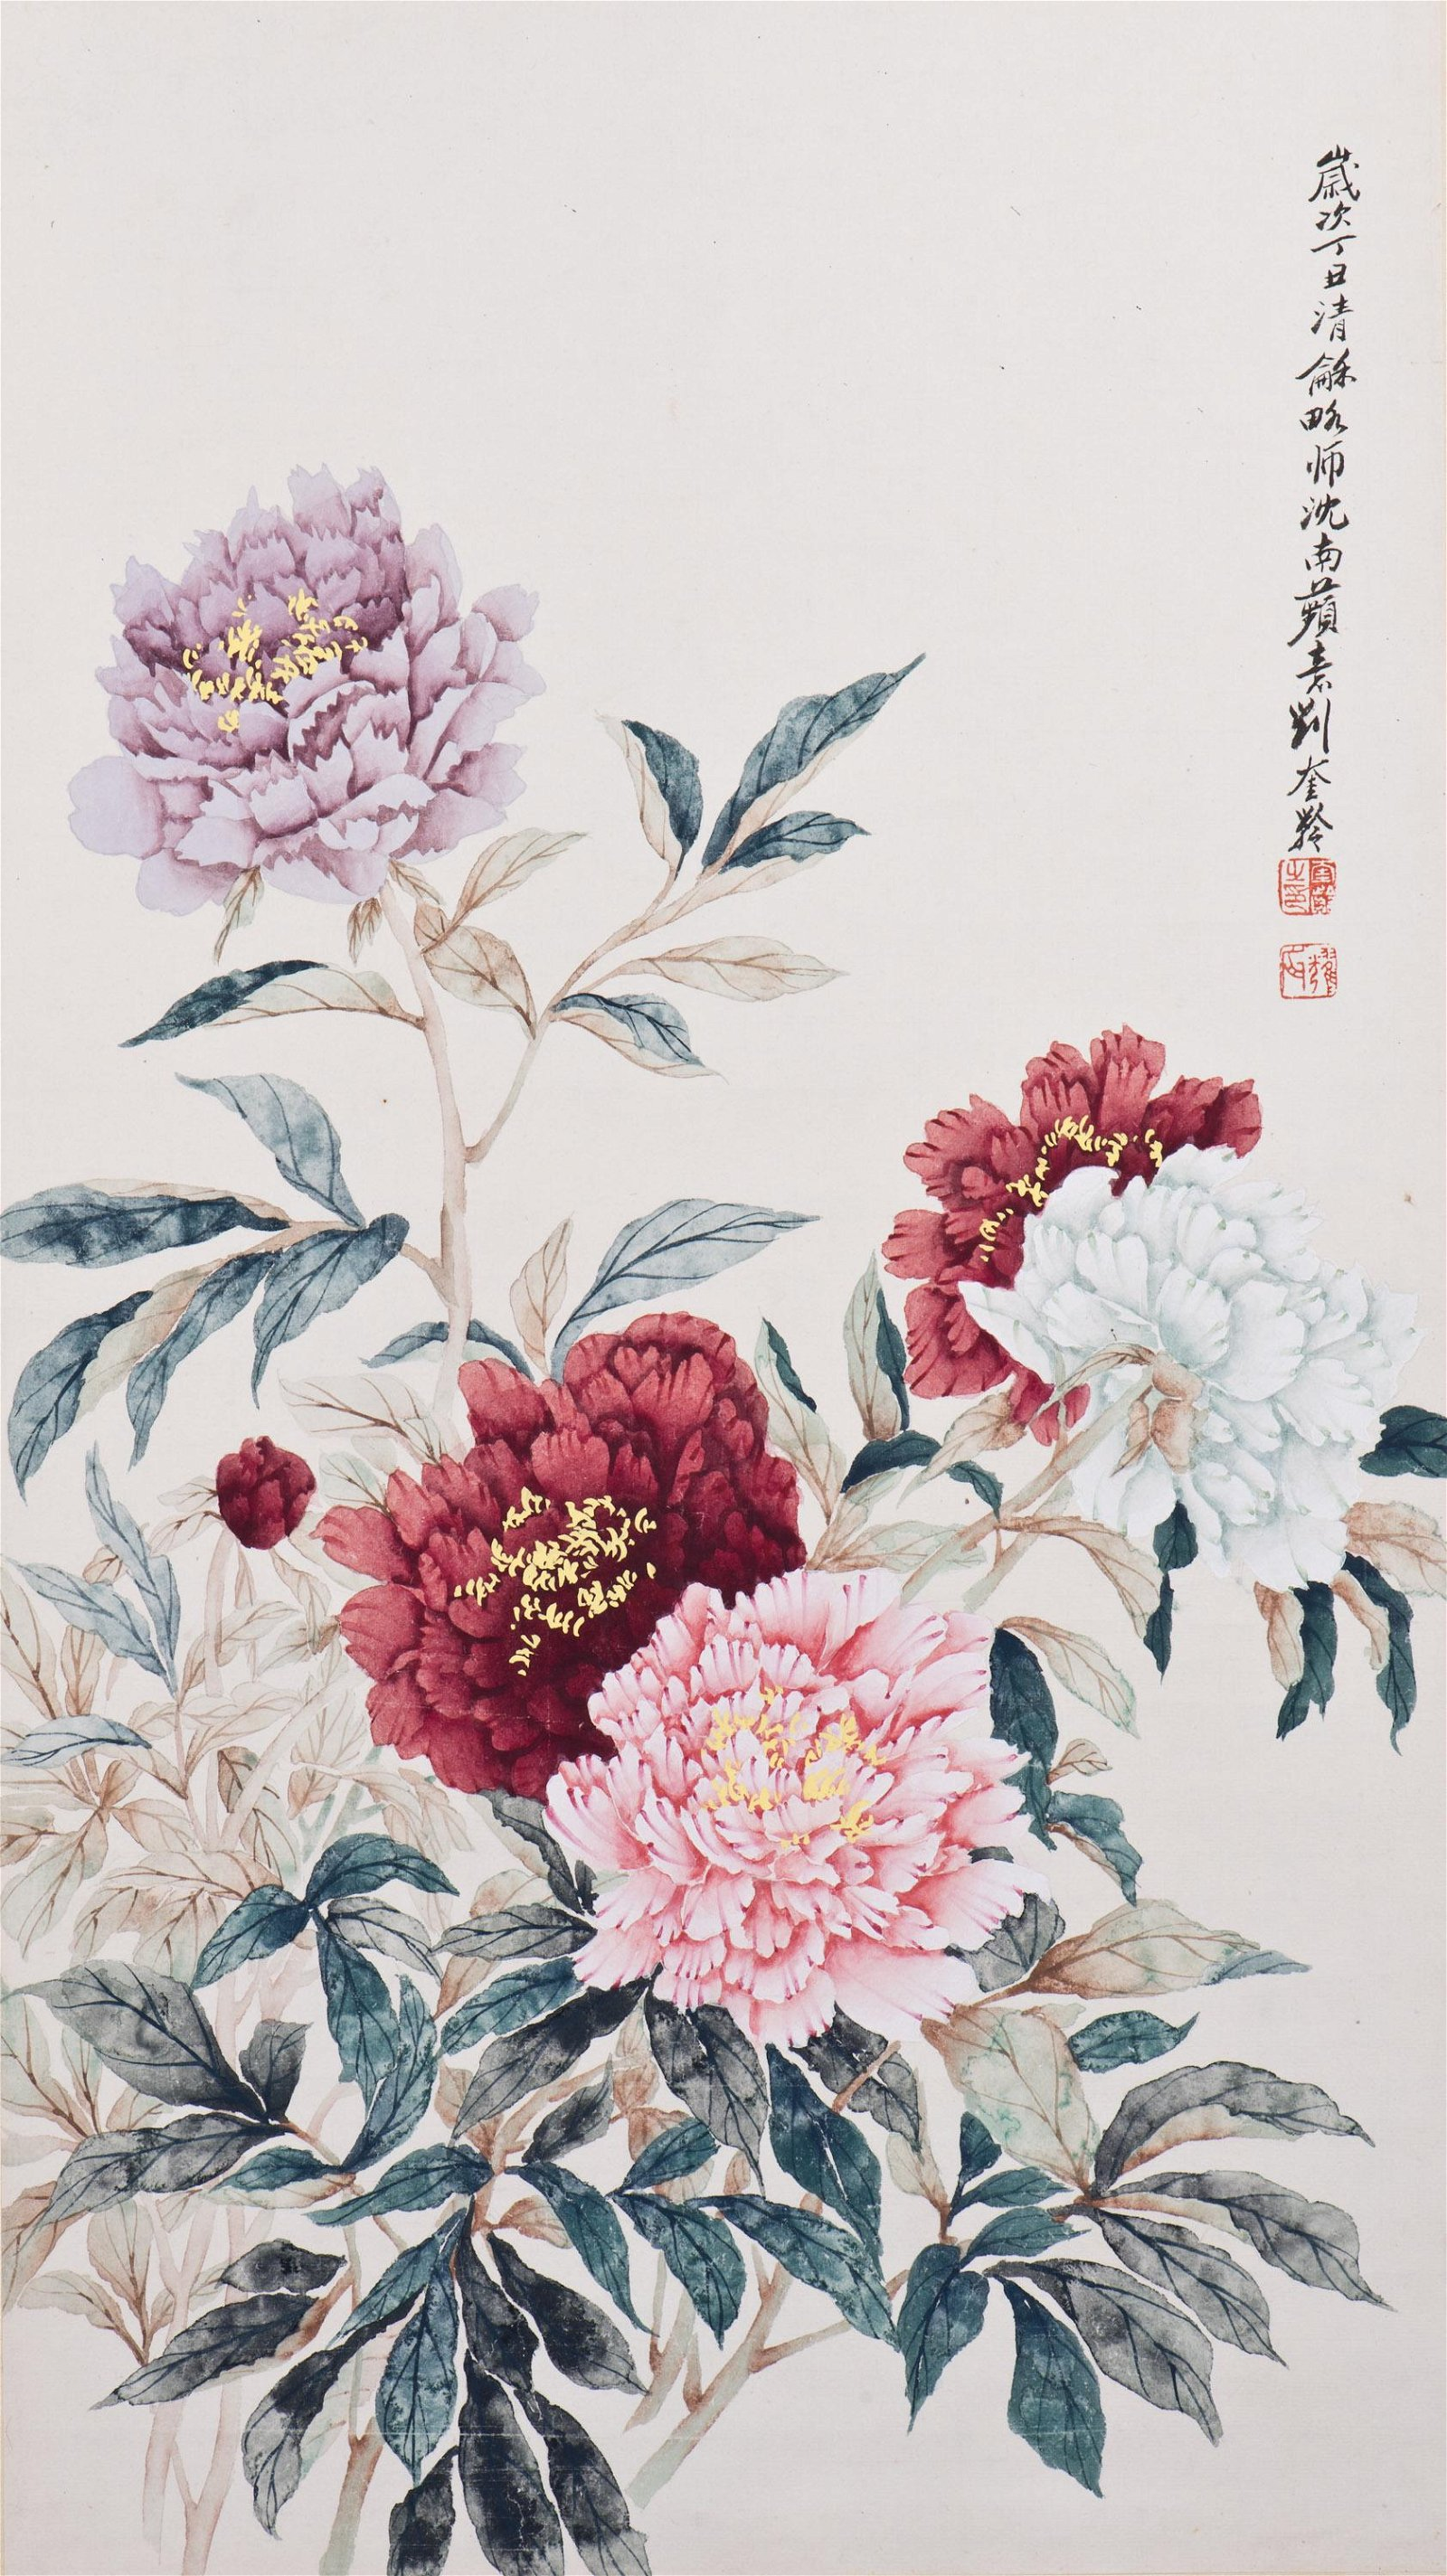 A CHINESE SCROLL PAINTING, AFTER LIU KUILING